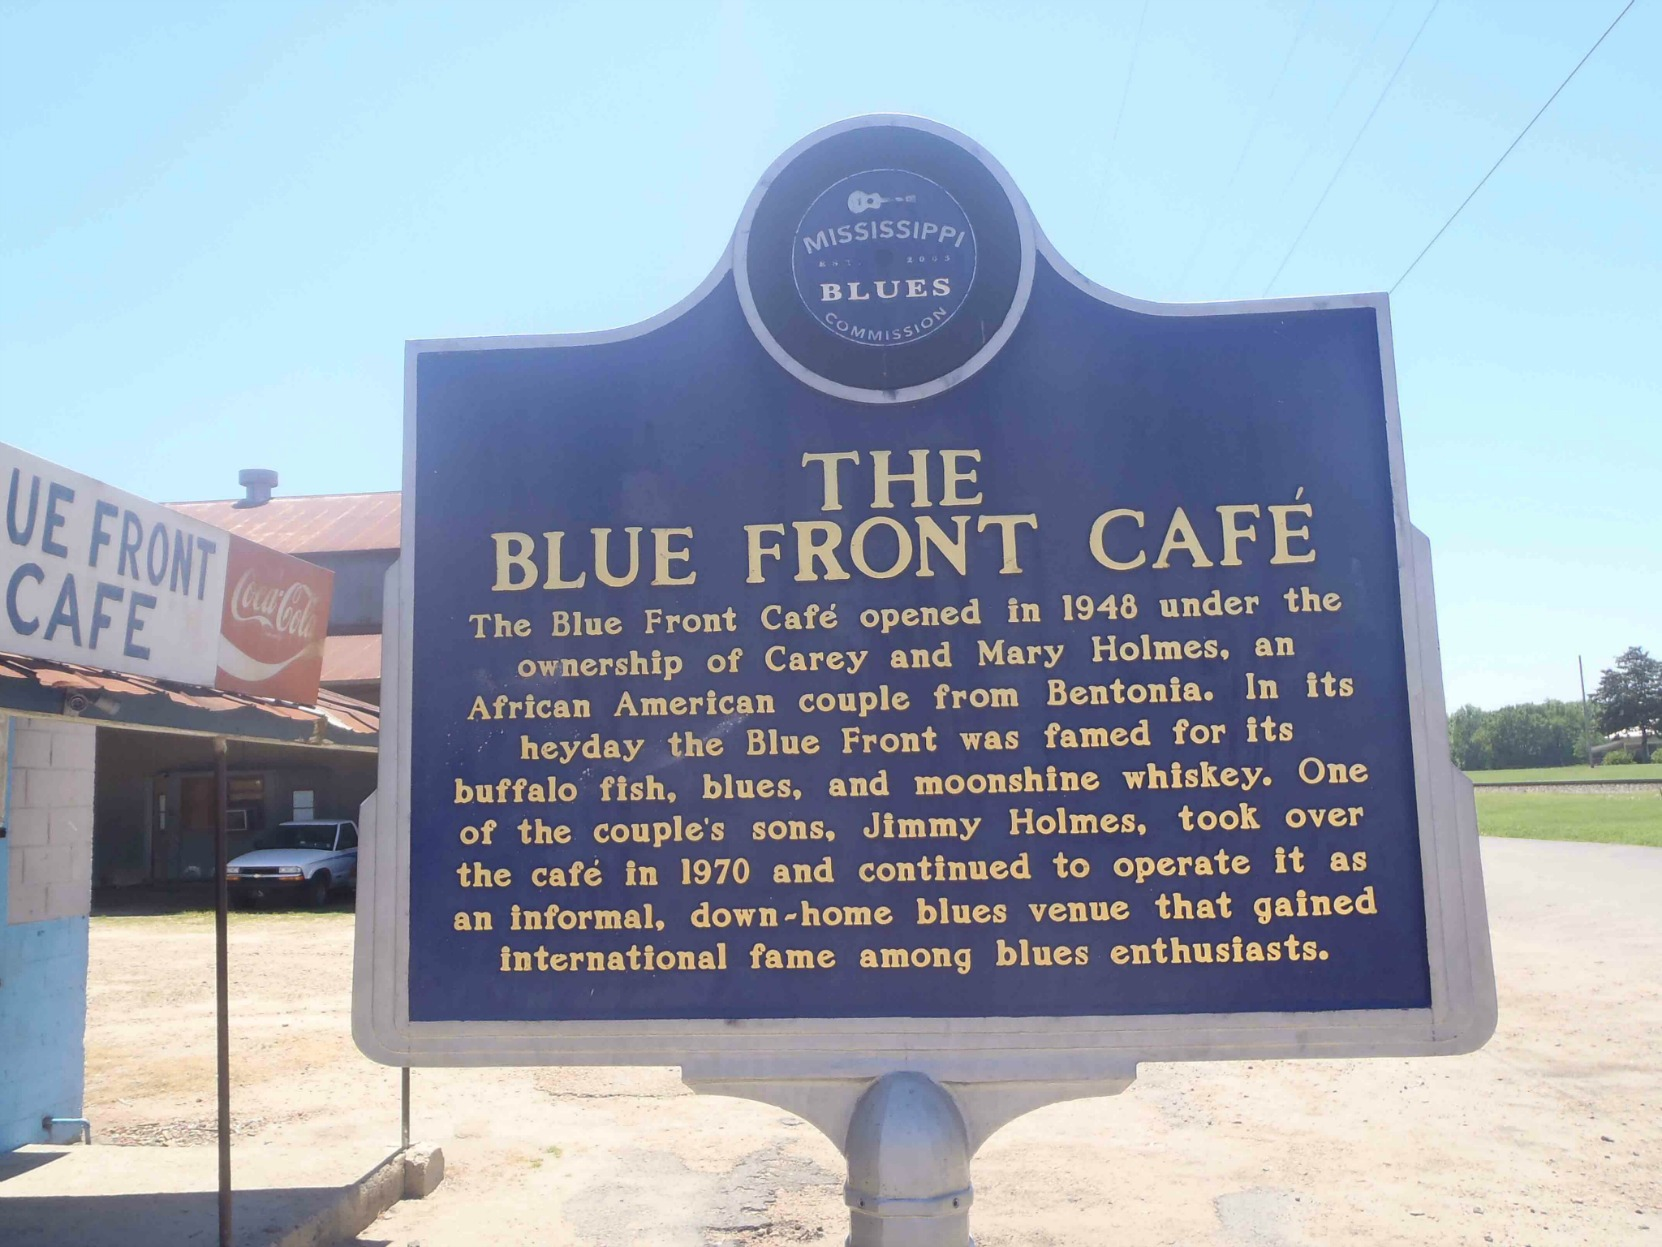 The Mississippi Blues Trail marker outside the Blue Front Cafe, Bentonia, Yazoo County, Mississippi.